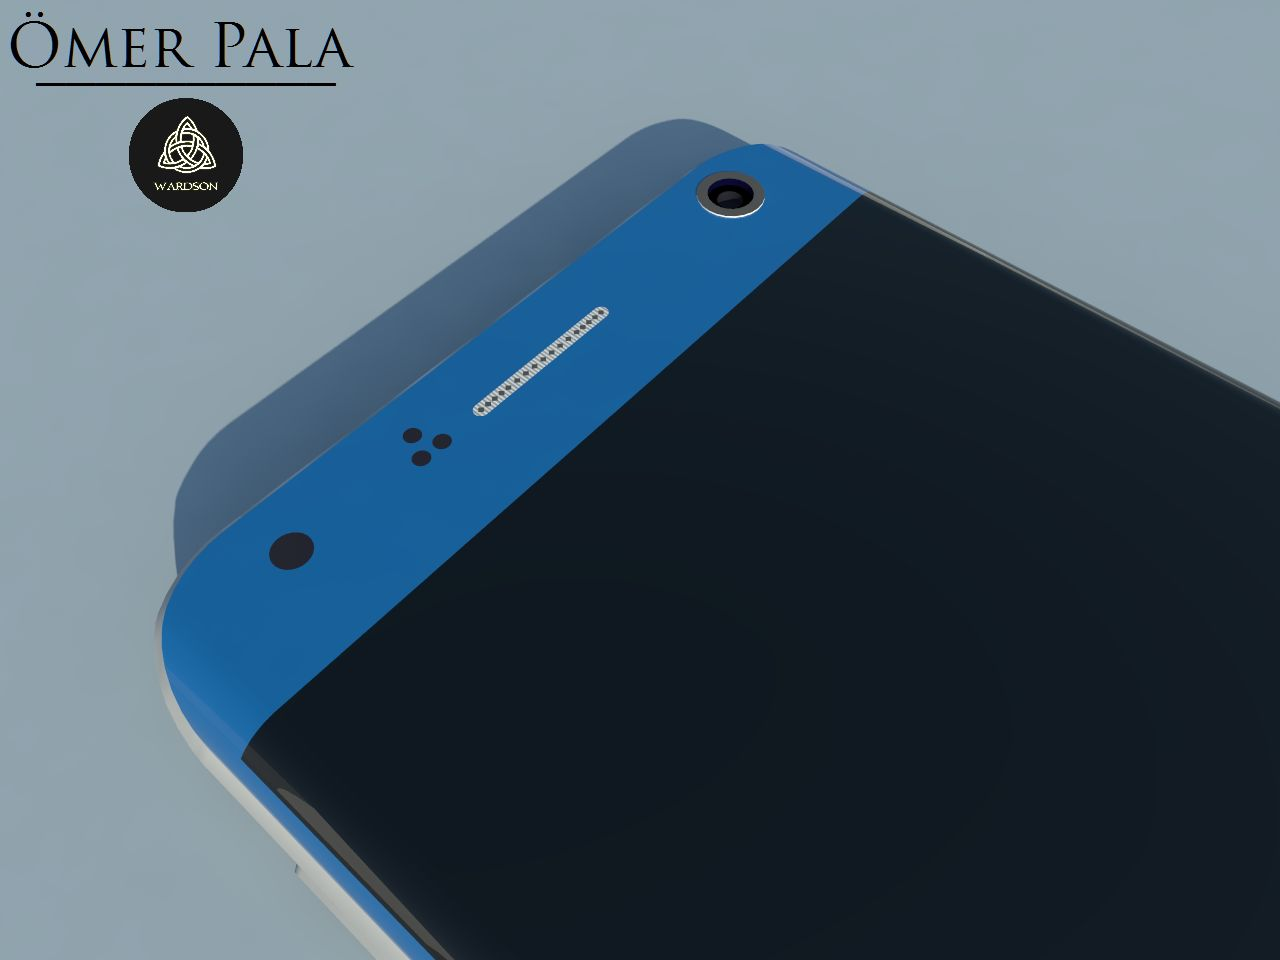 The designer included a 16 megapixel rear camera 12 mp front shooter